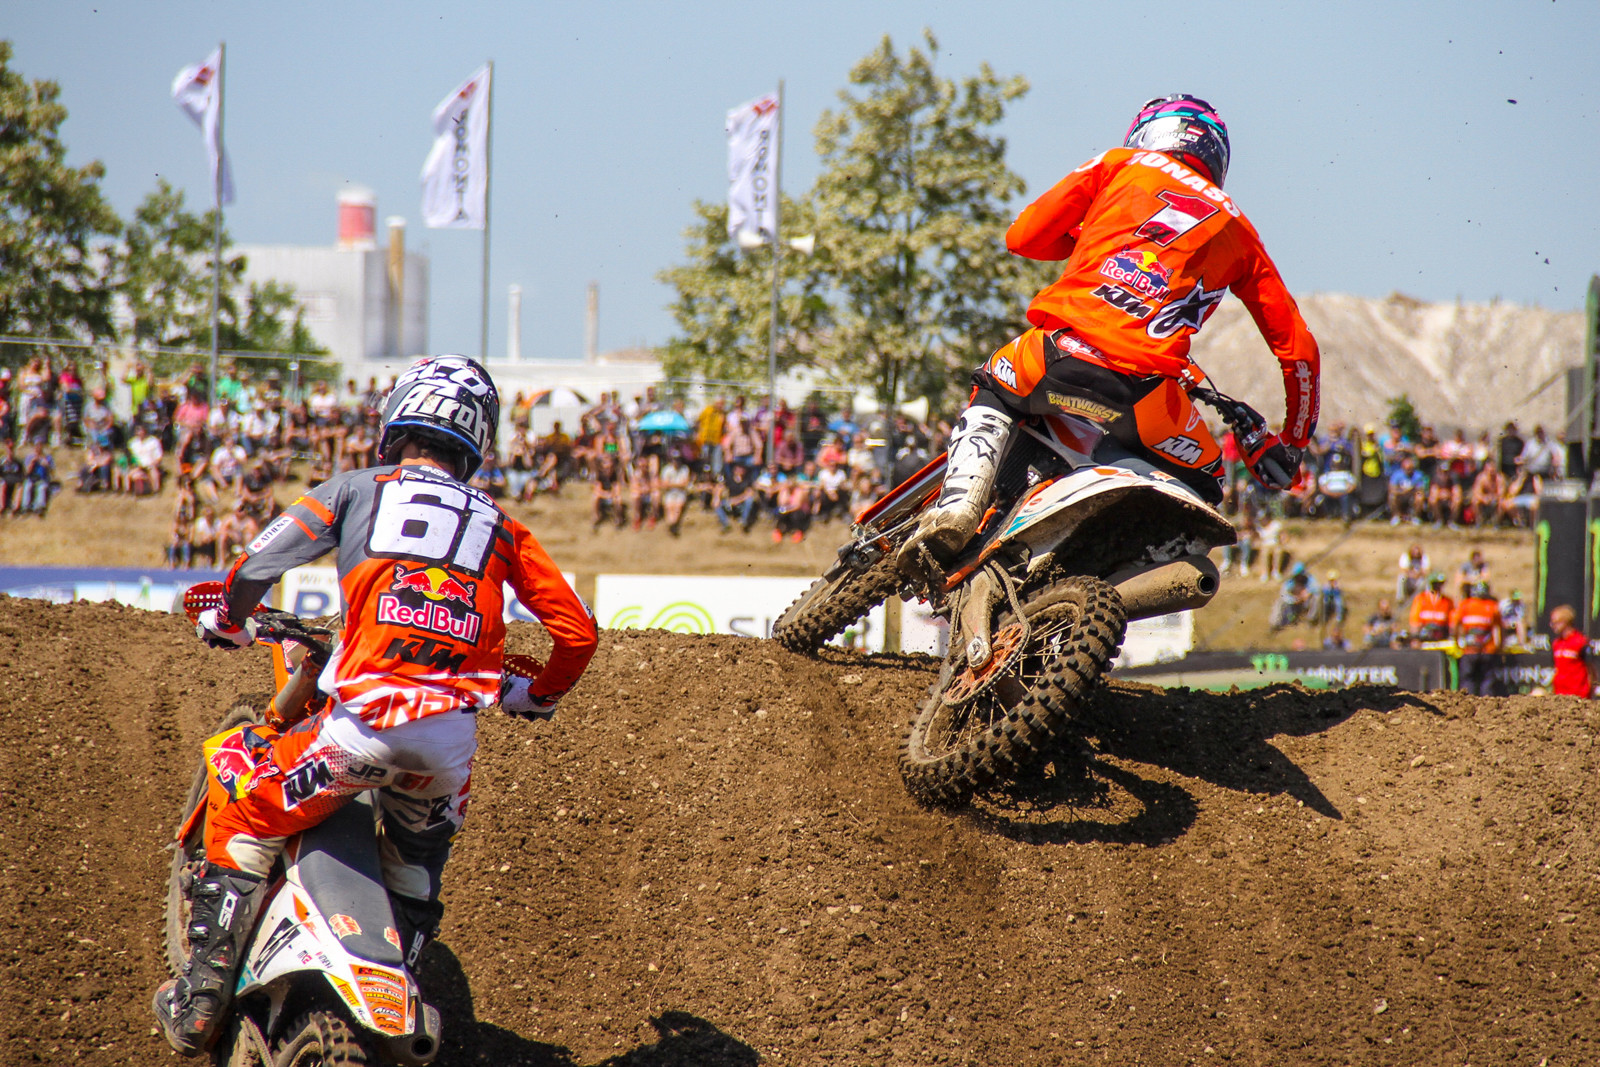 Jorge Prado and Pauls Jonass traded moto wins again, keeping the points gap at 22 in favor of Jonass.